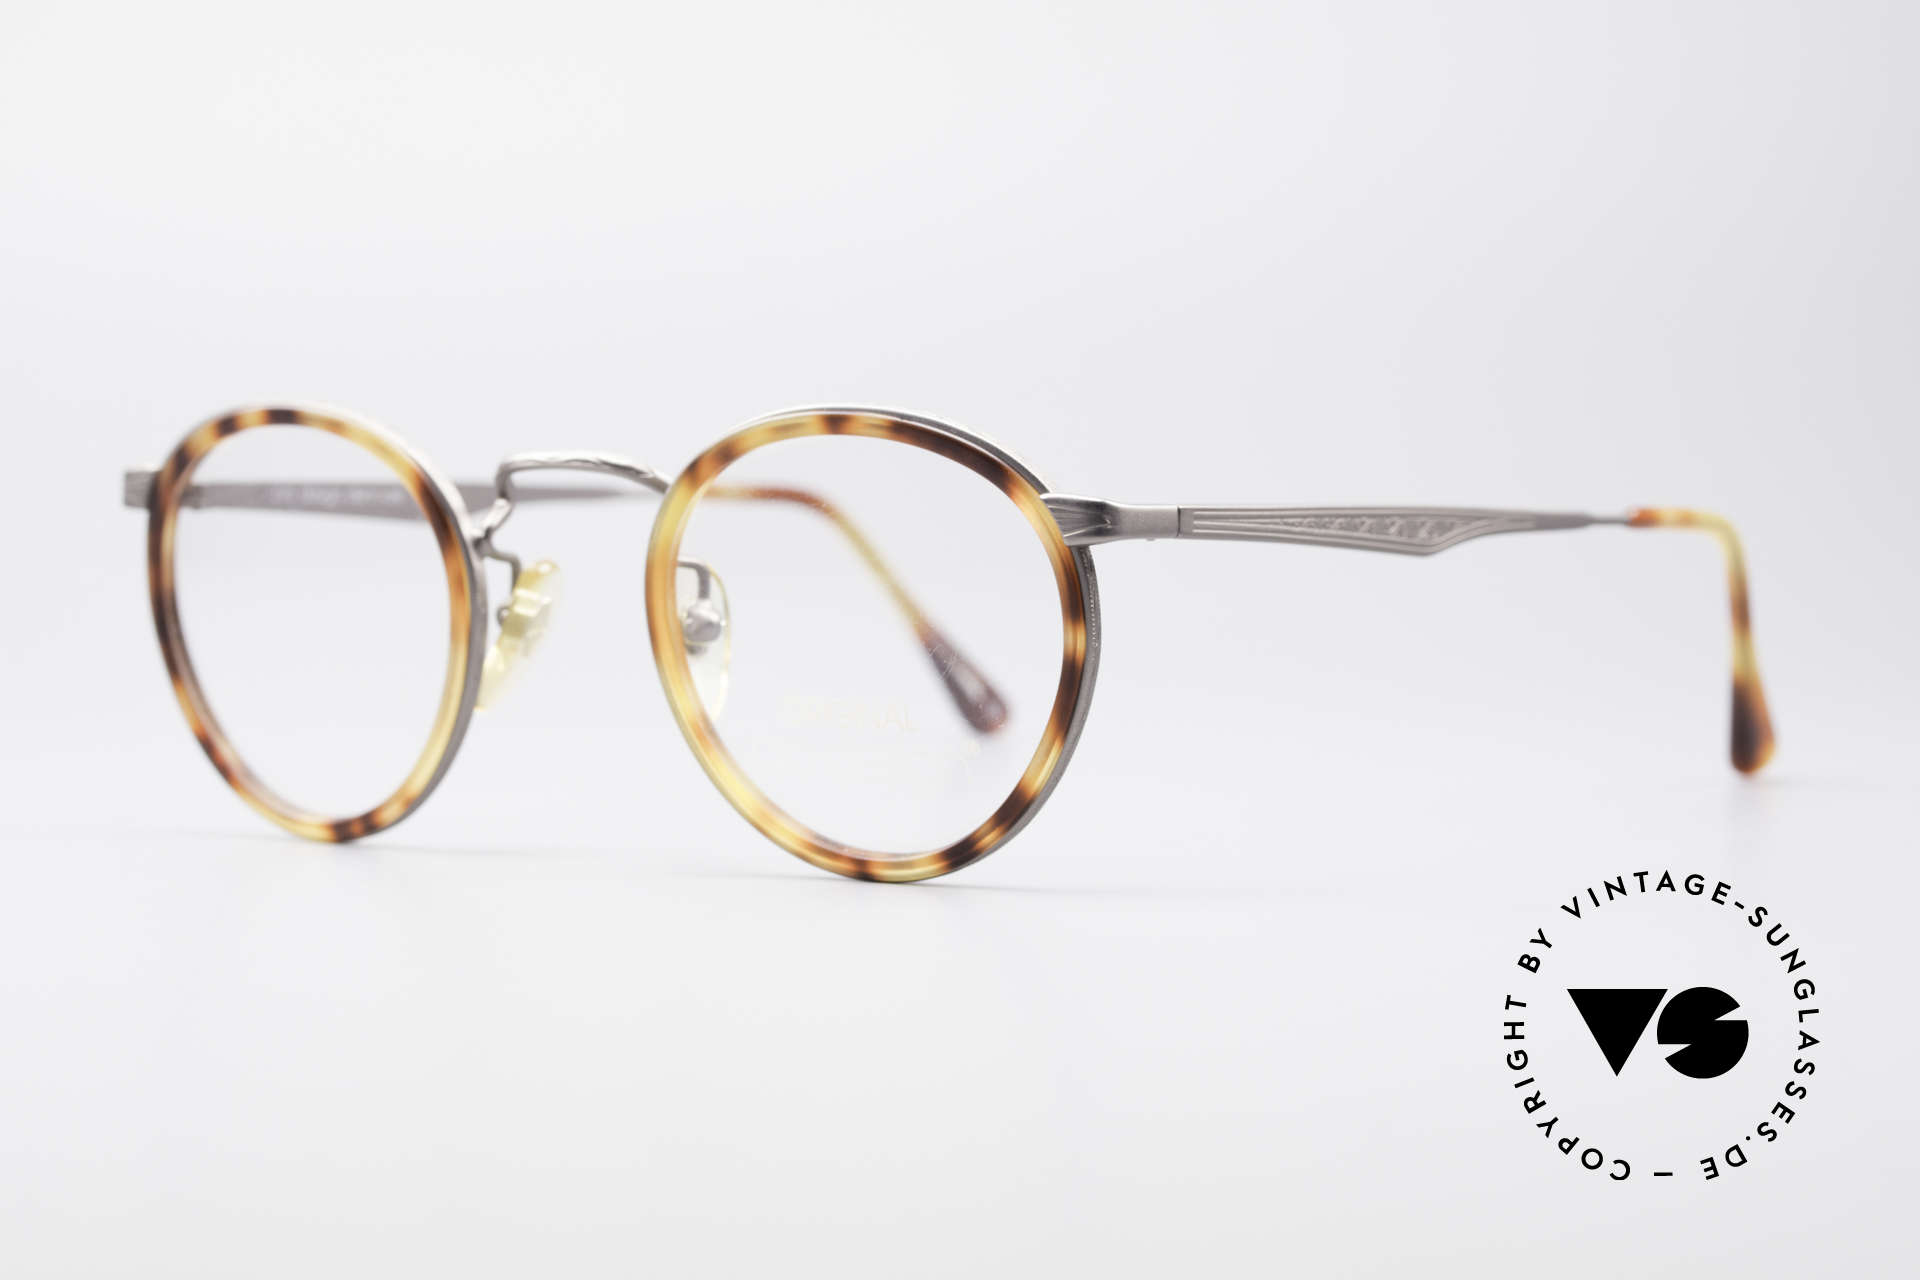 ProDesign Denmark Club 55C Panto Glasses, bridge and metal temples with costly engravings, Made for Men